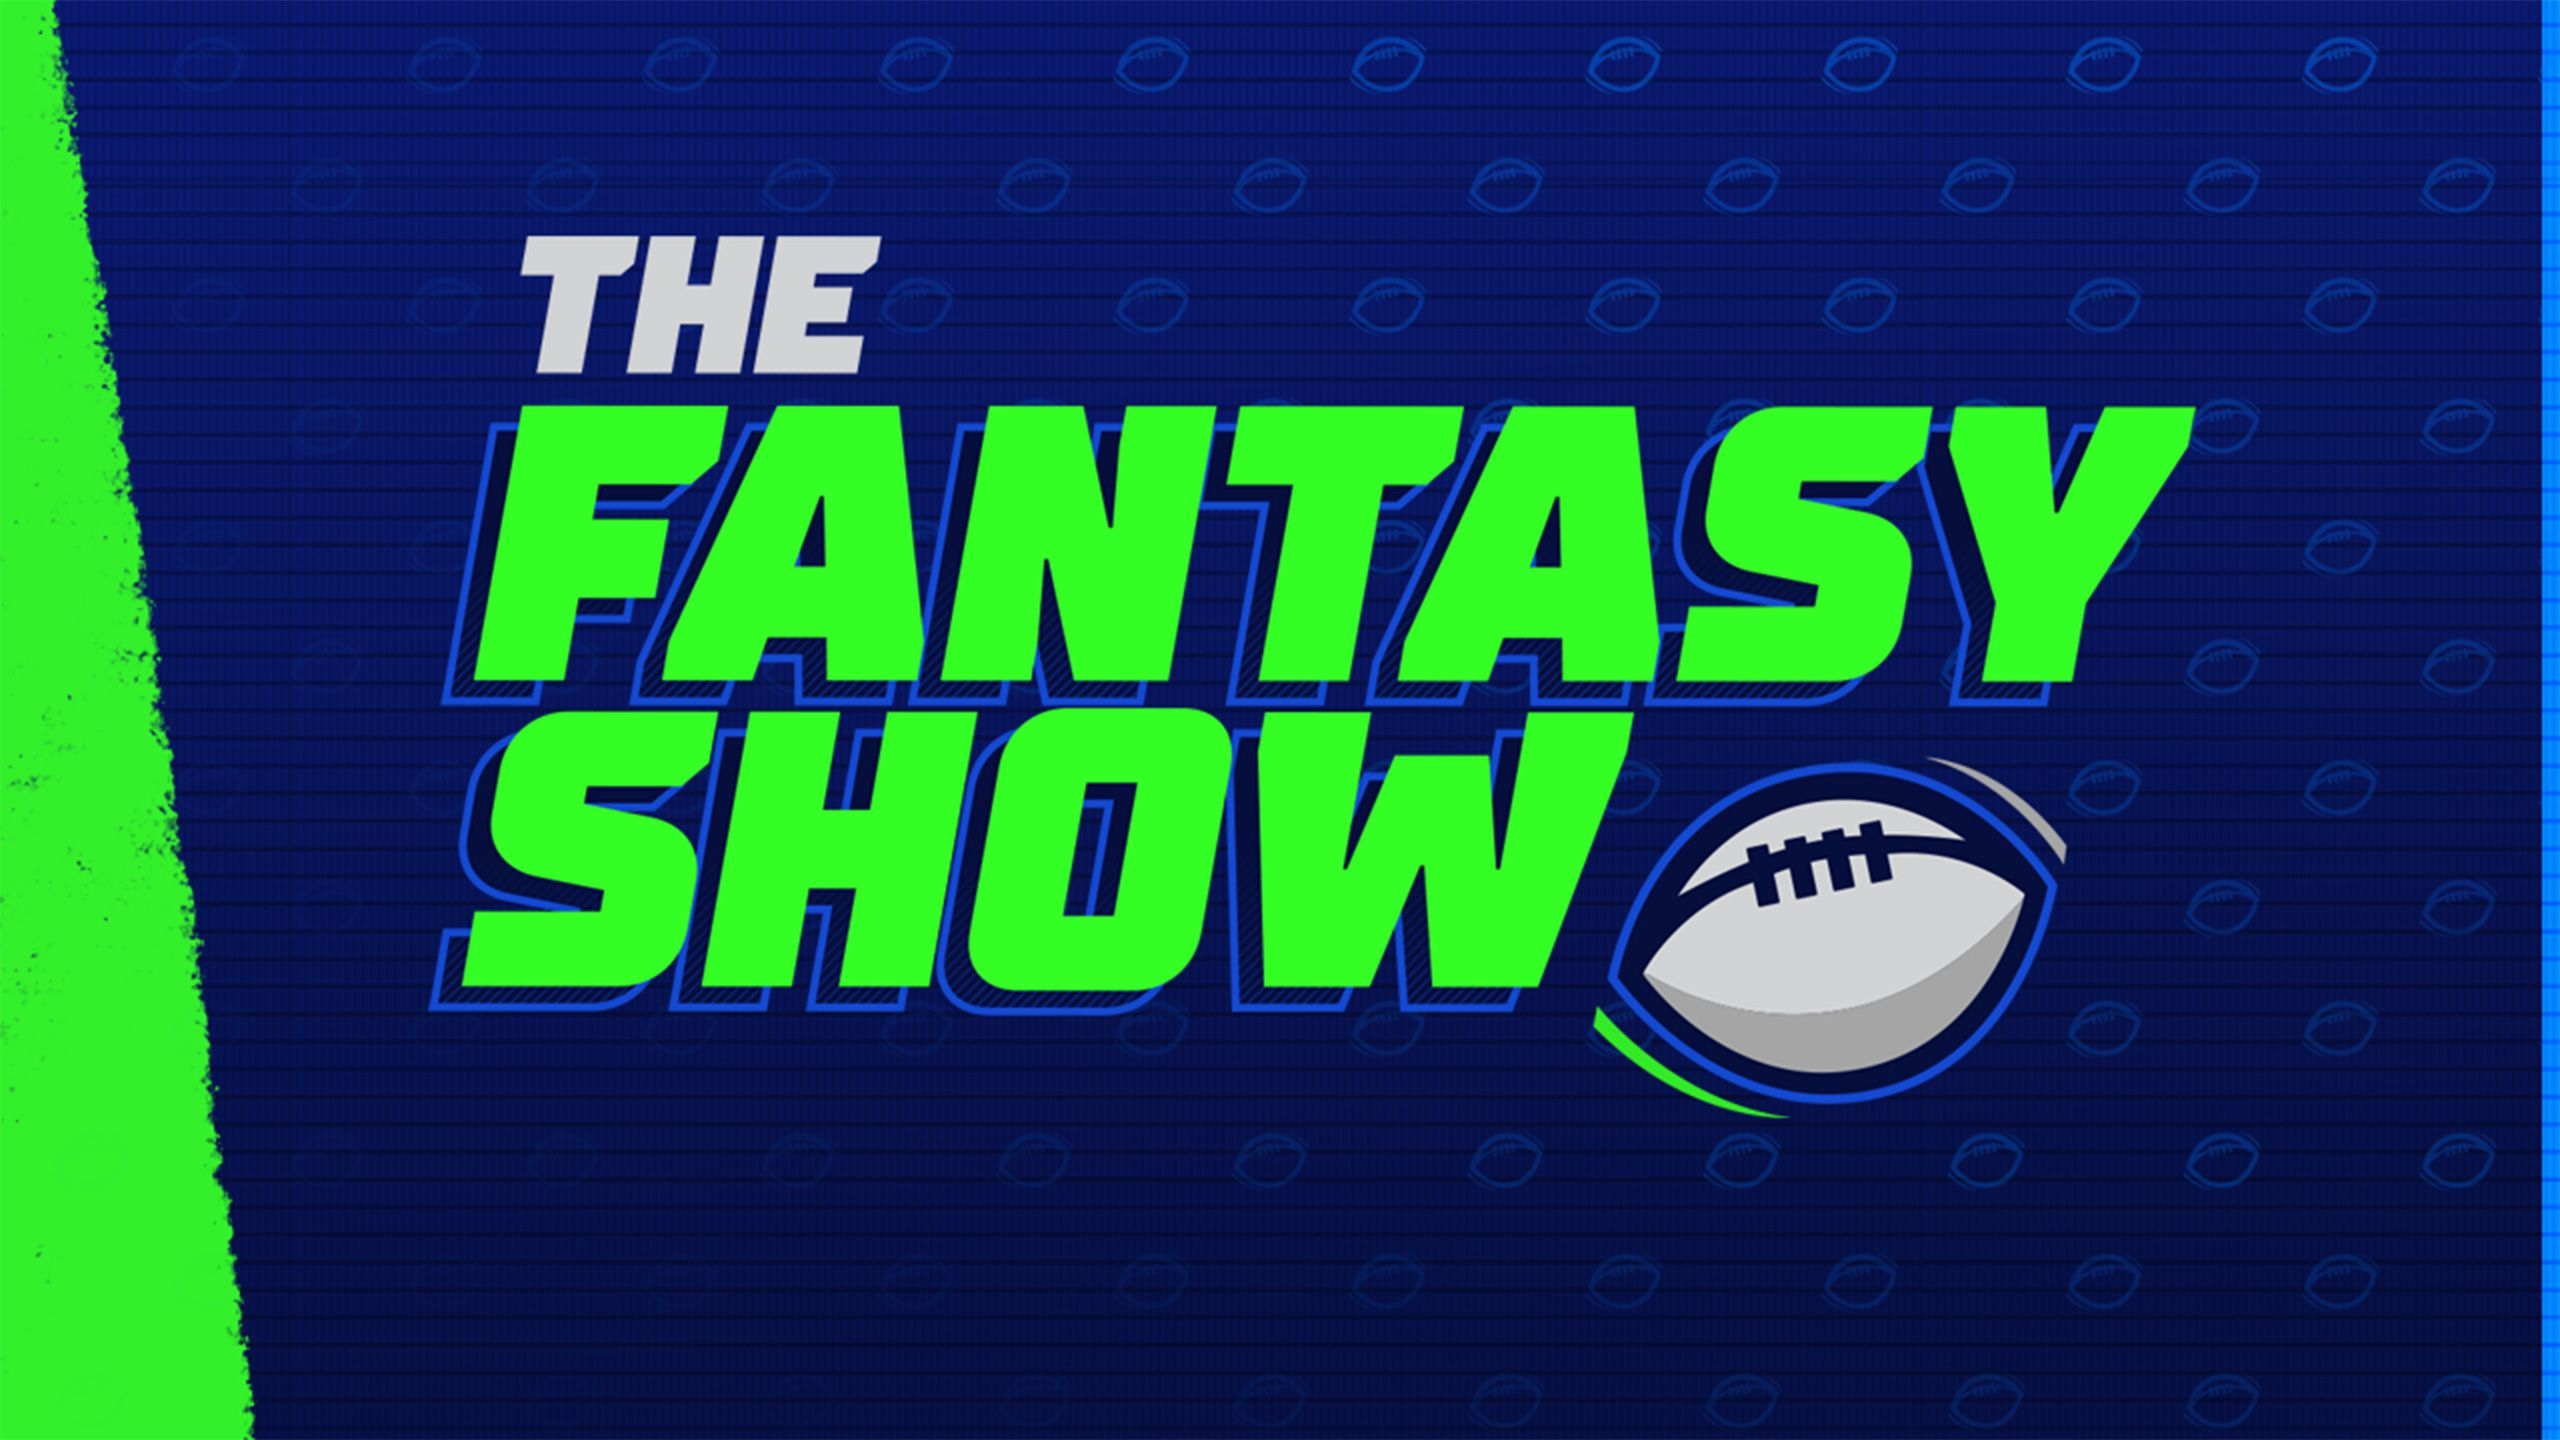 Tue, 12/12 - The Fantasy Show presented by E*Trade